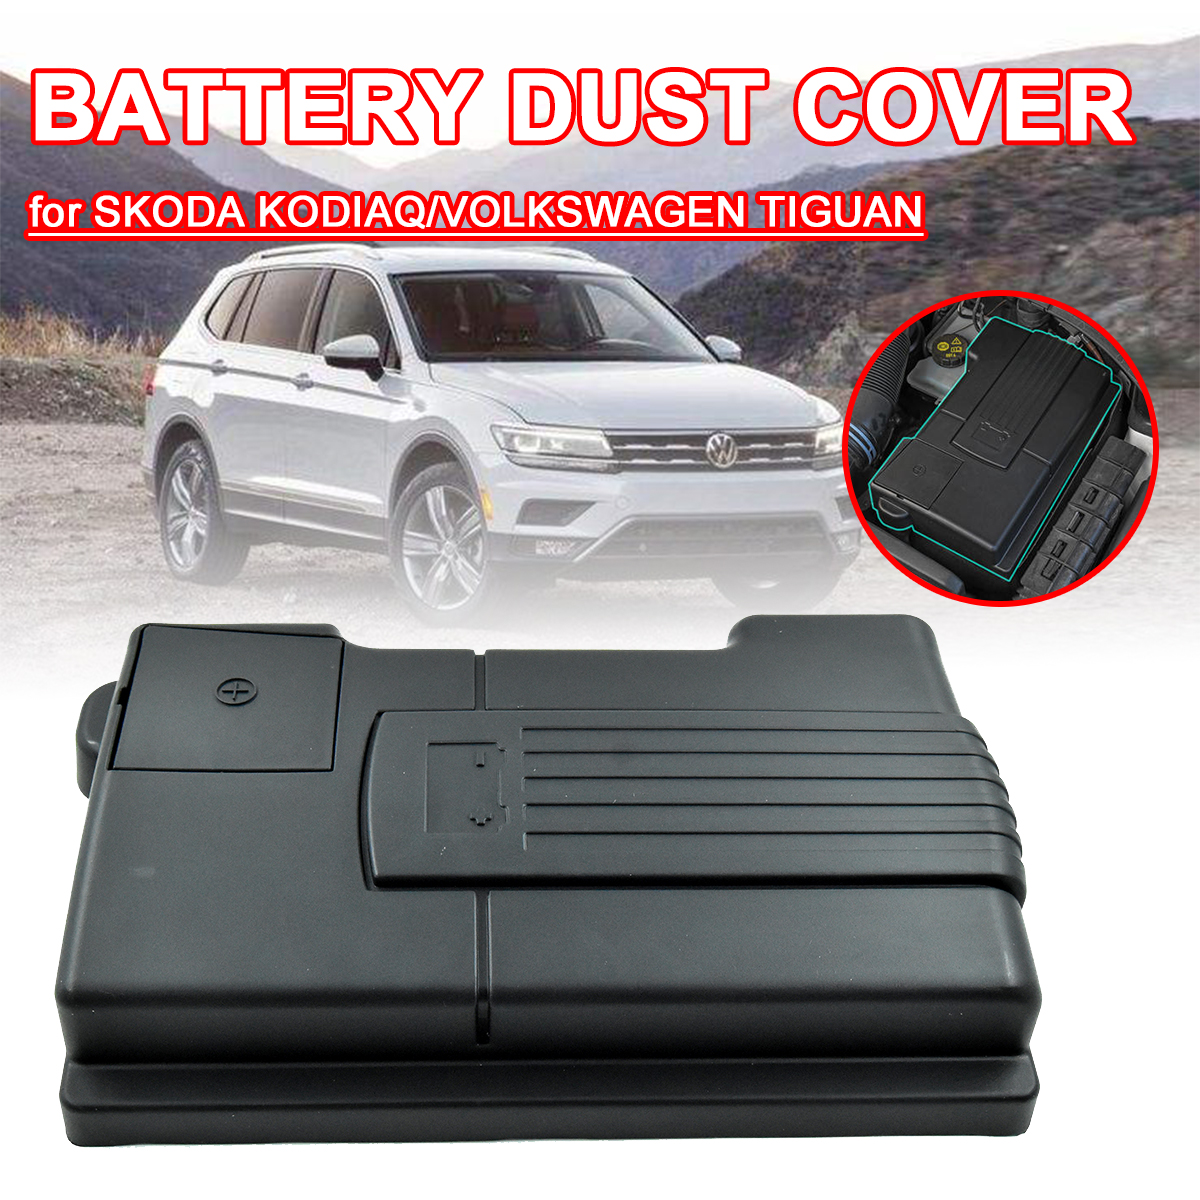 Engine Battery for Skoda Kodiaq Octavia 5E A7 VW Tiguan L 2016 - 2019 Dustproof Protective Cover Negative Electrode Waterproof image